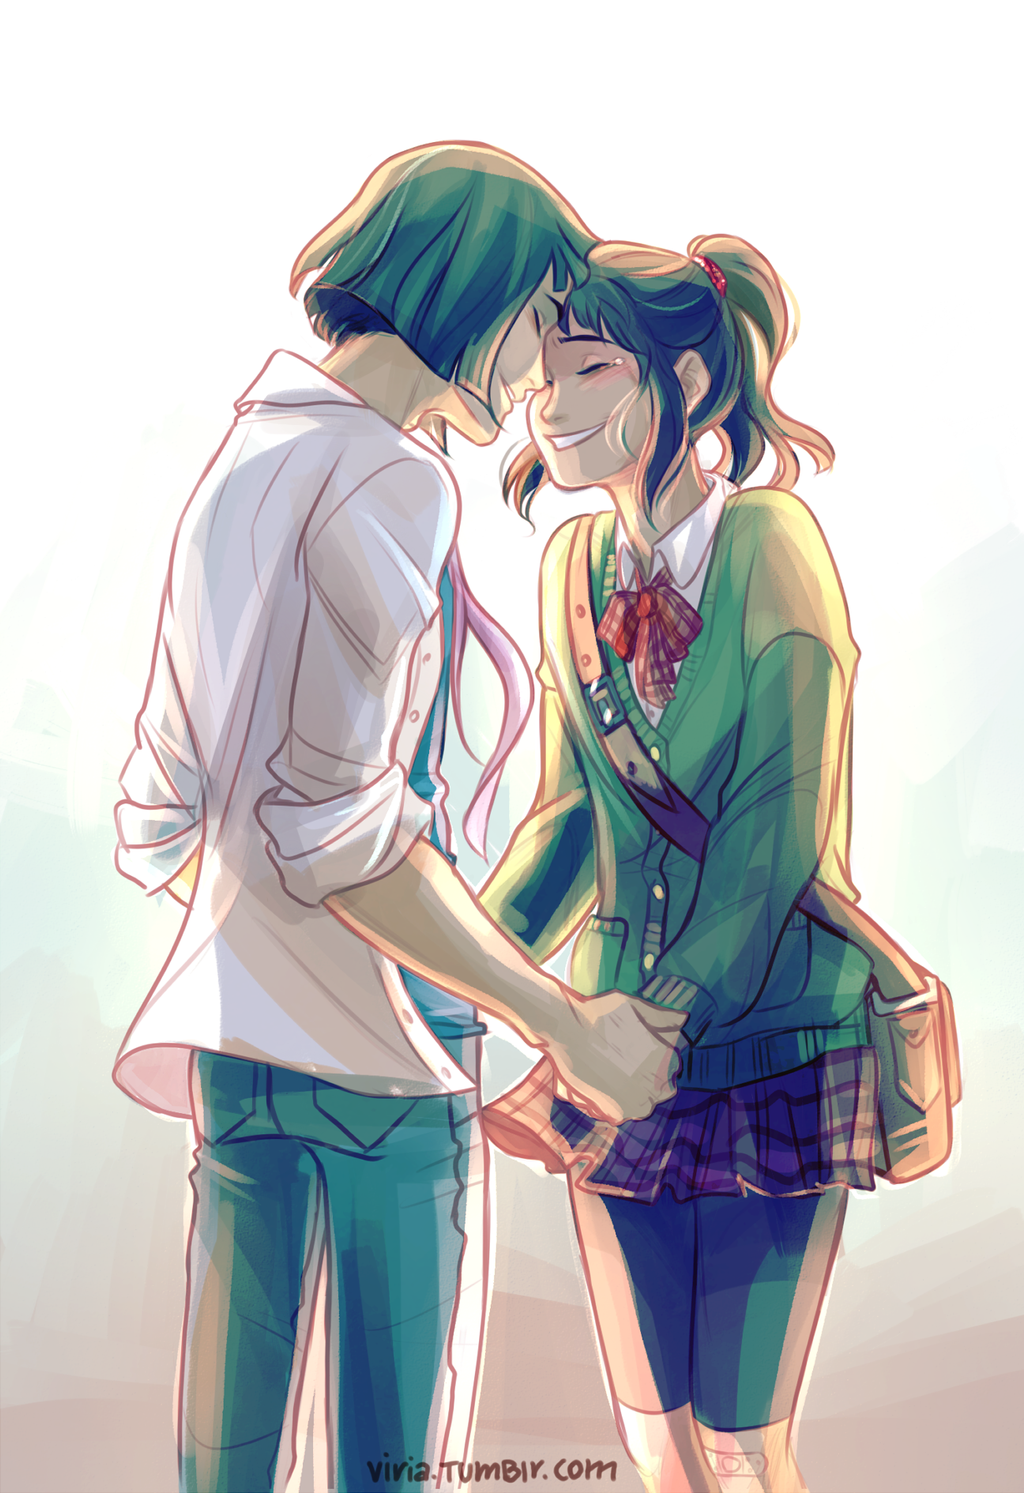 I will wait for you by viria13